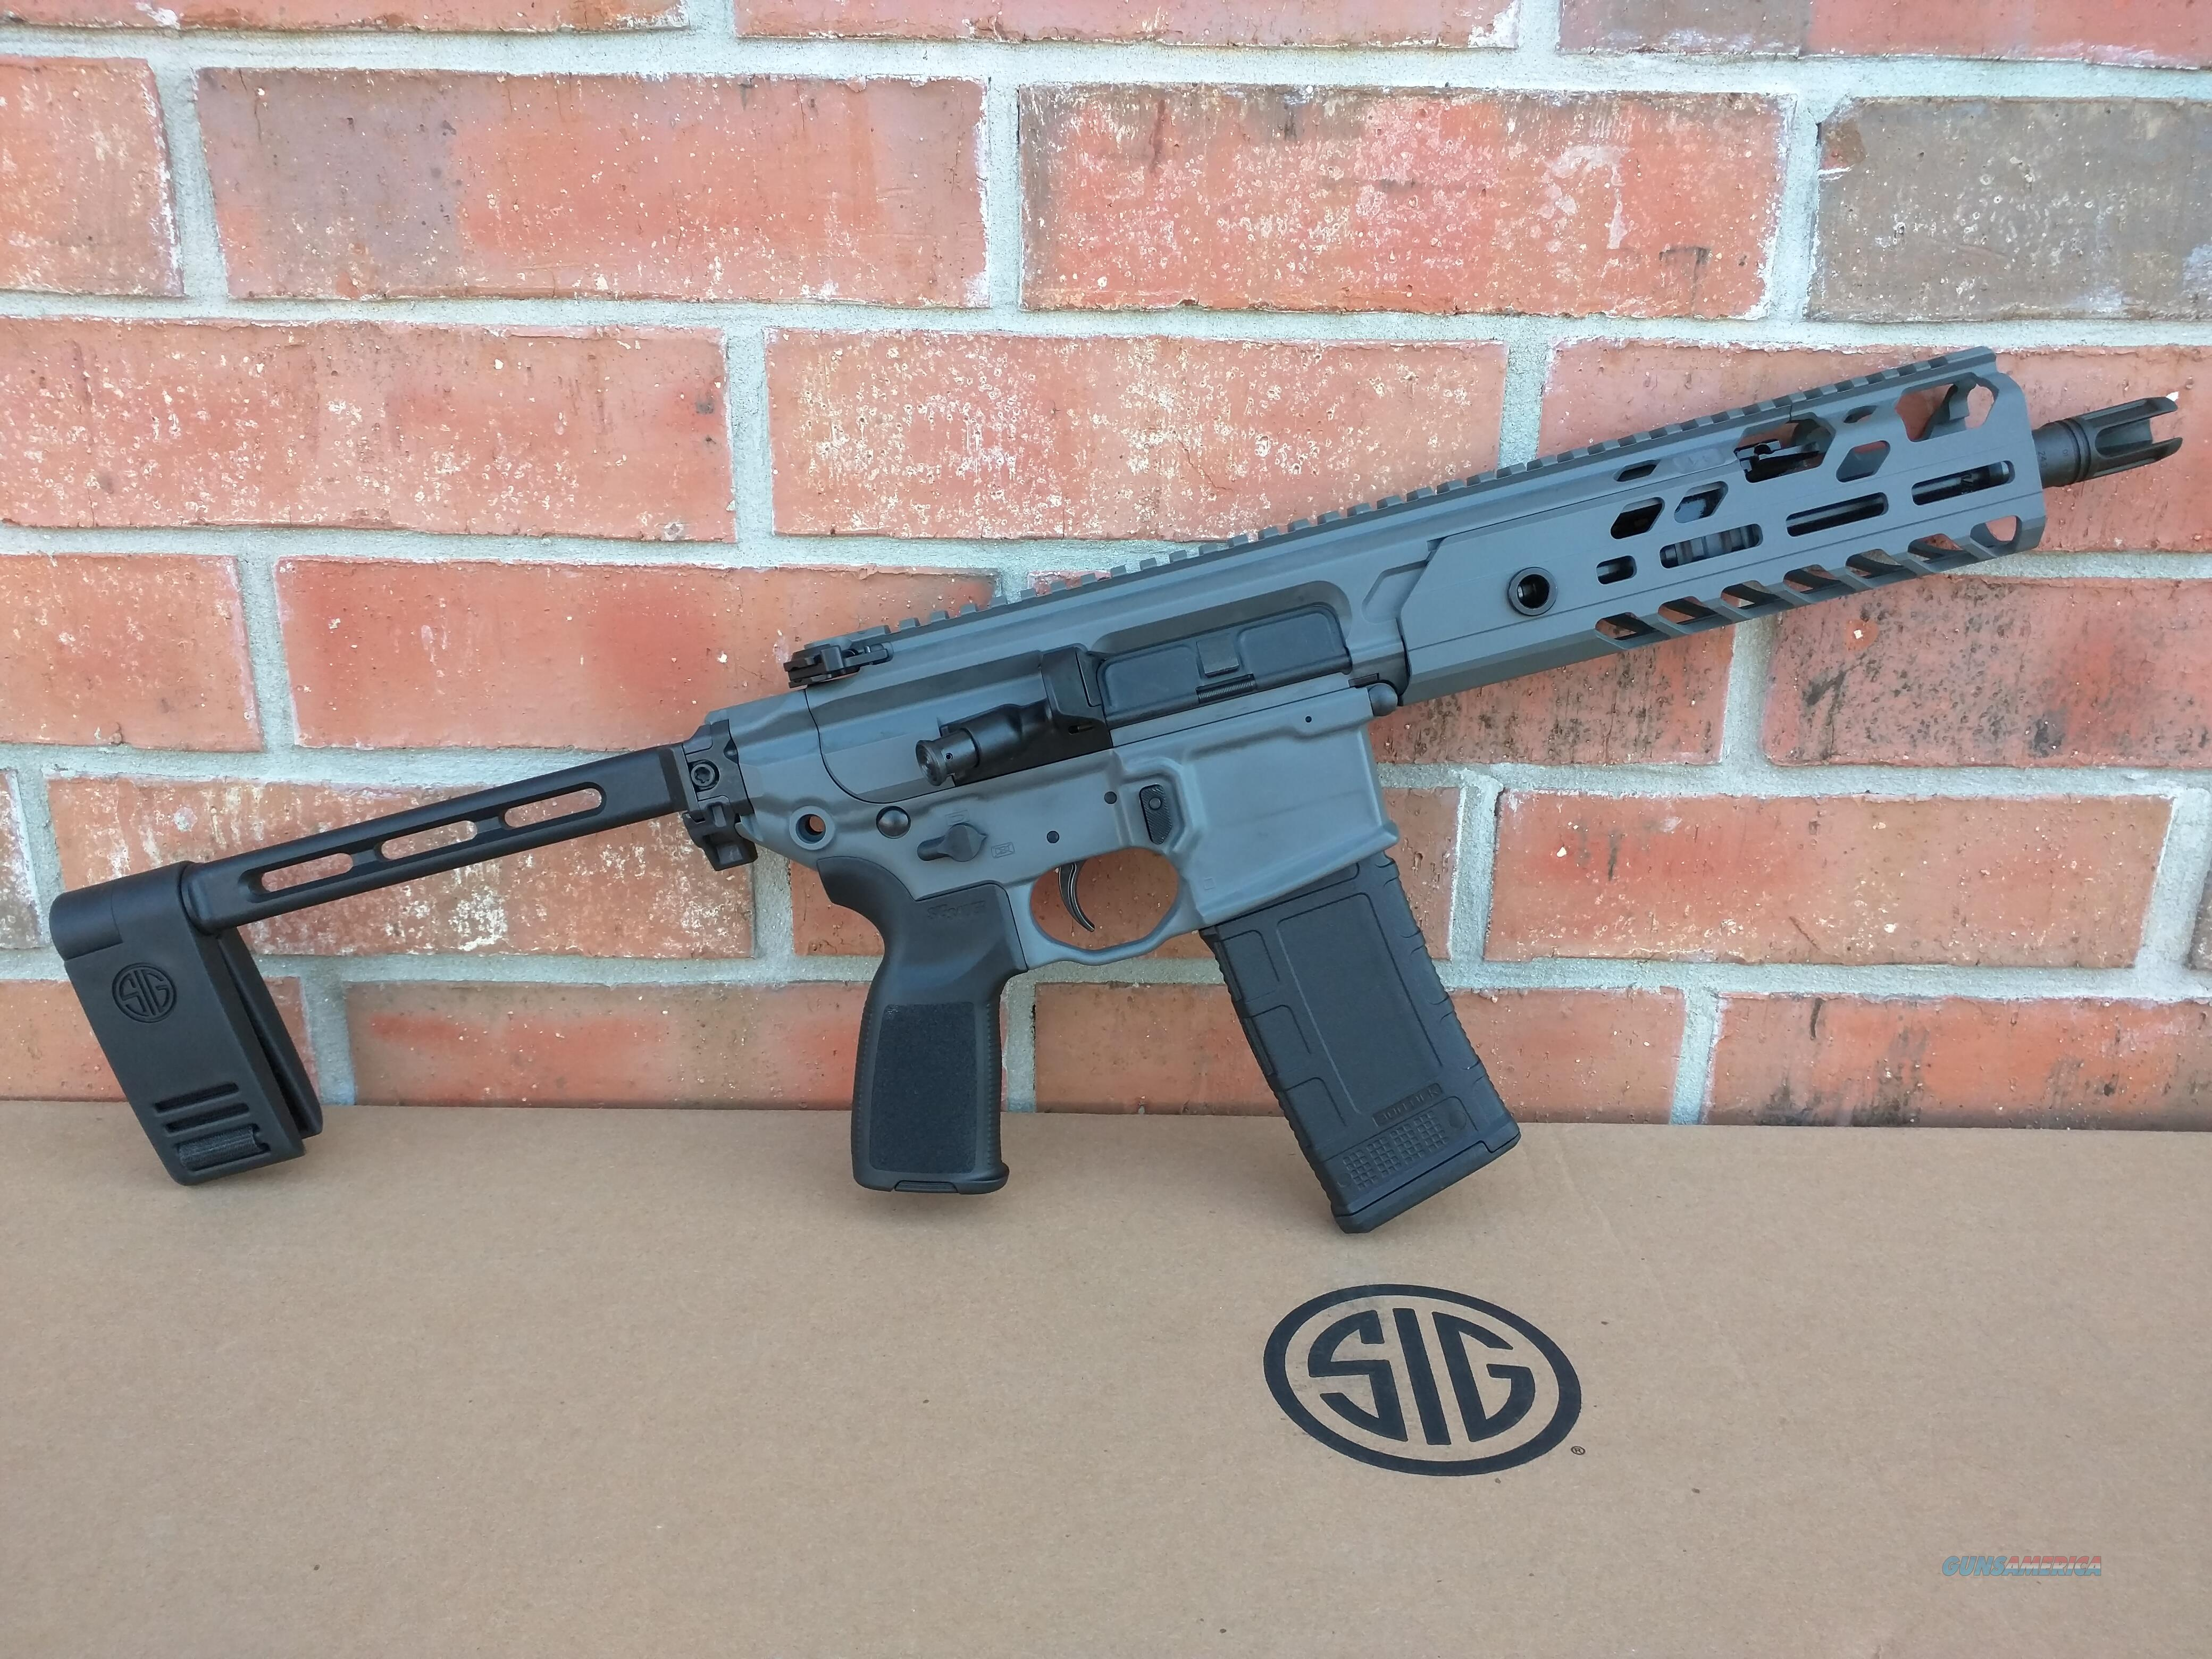 "Sig Sauer AR 15 AR15 MCX Virtus Pistol 300 AAC Blackout ,NIB, 9"" Barrel, Folding Pistol Brace, Adjustable Piston, Stealth Gray, Match Lite, Duo Trigger, AMBI Controls, FREE LAYAWAY  Guns > Rifles > Sig - Sauer/Sigarms Rifles"